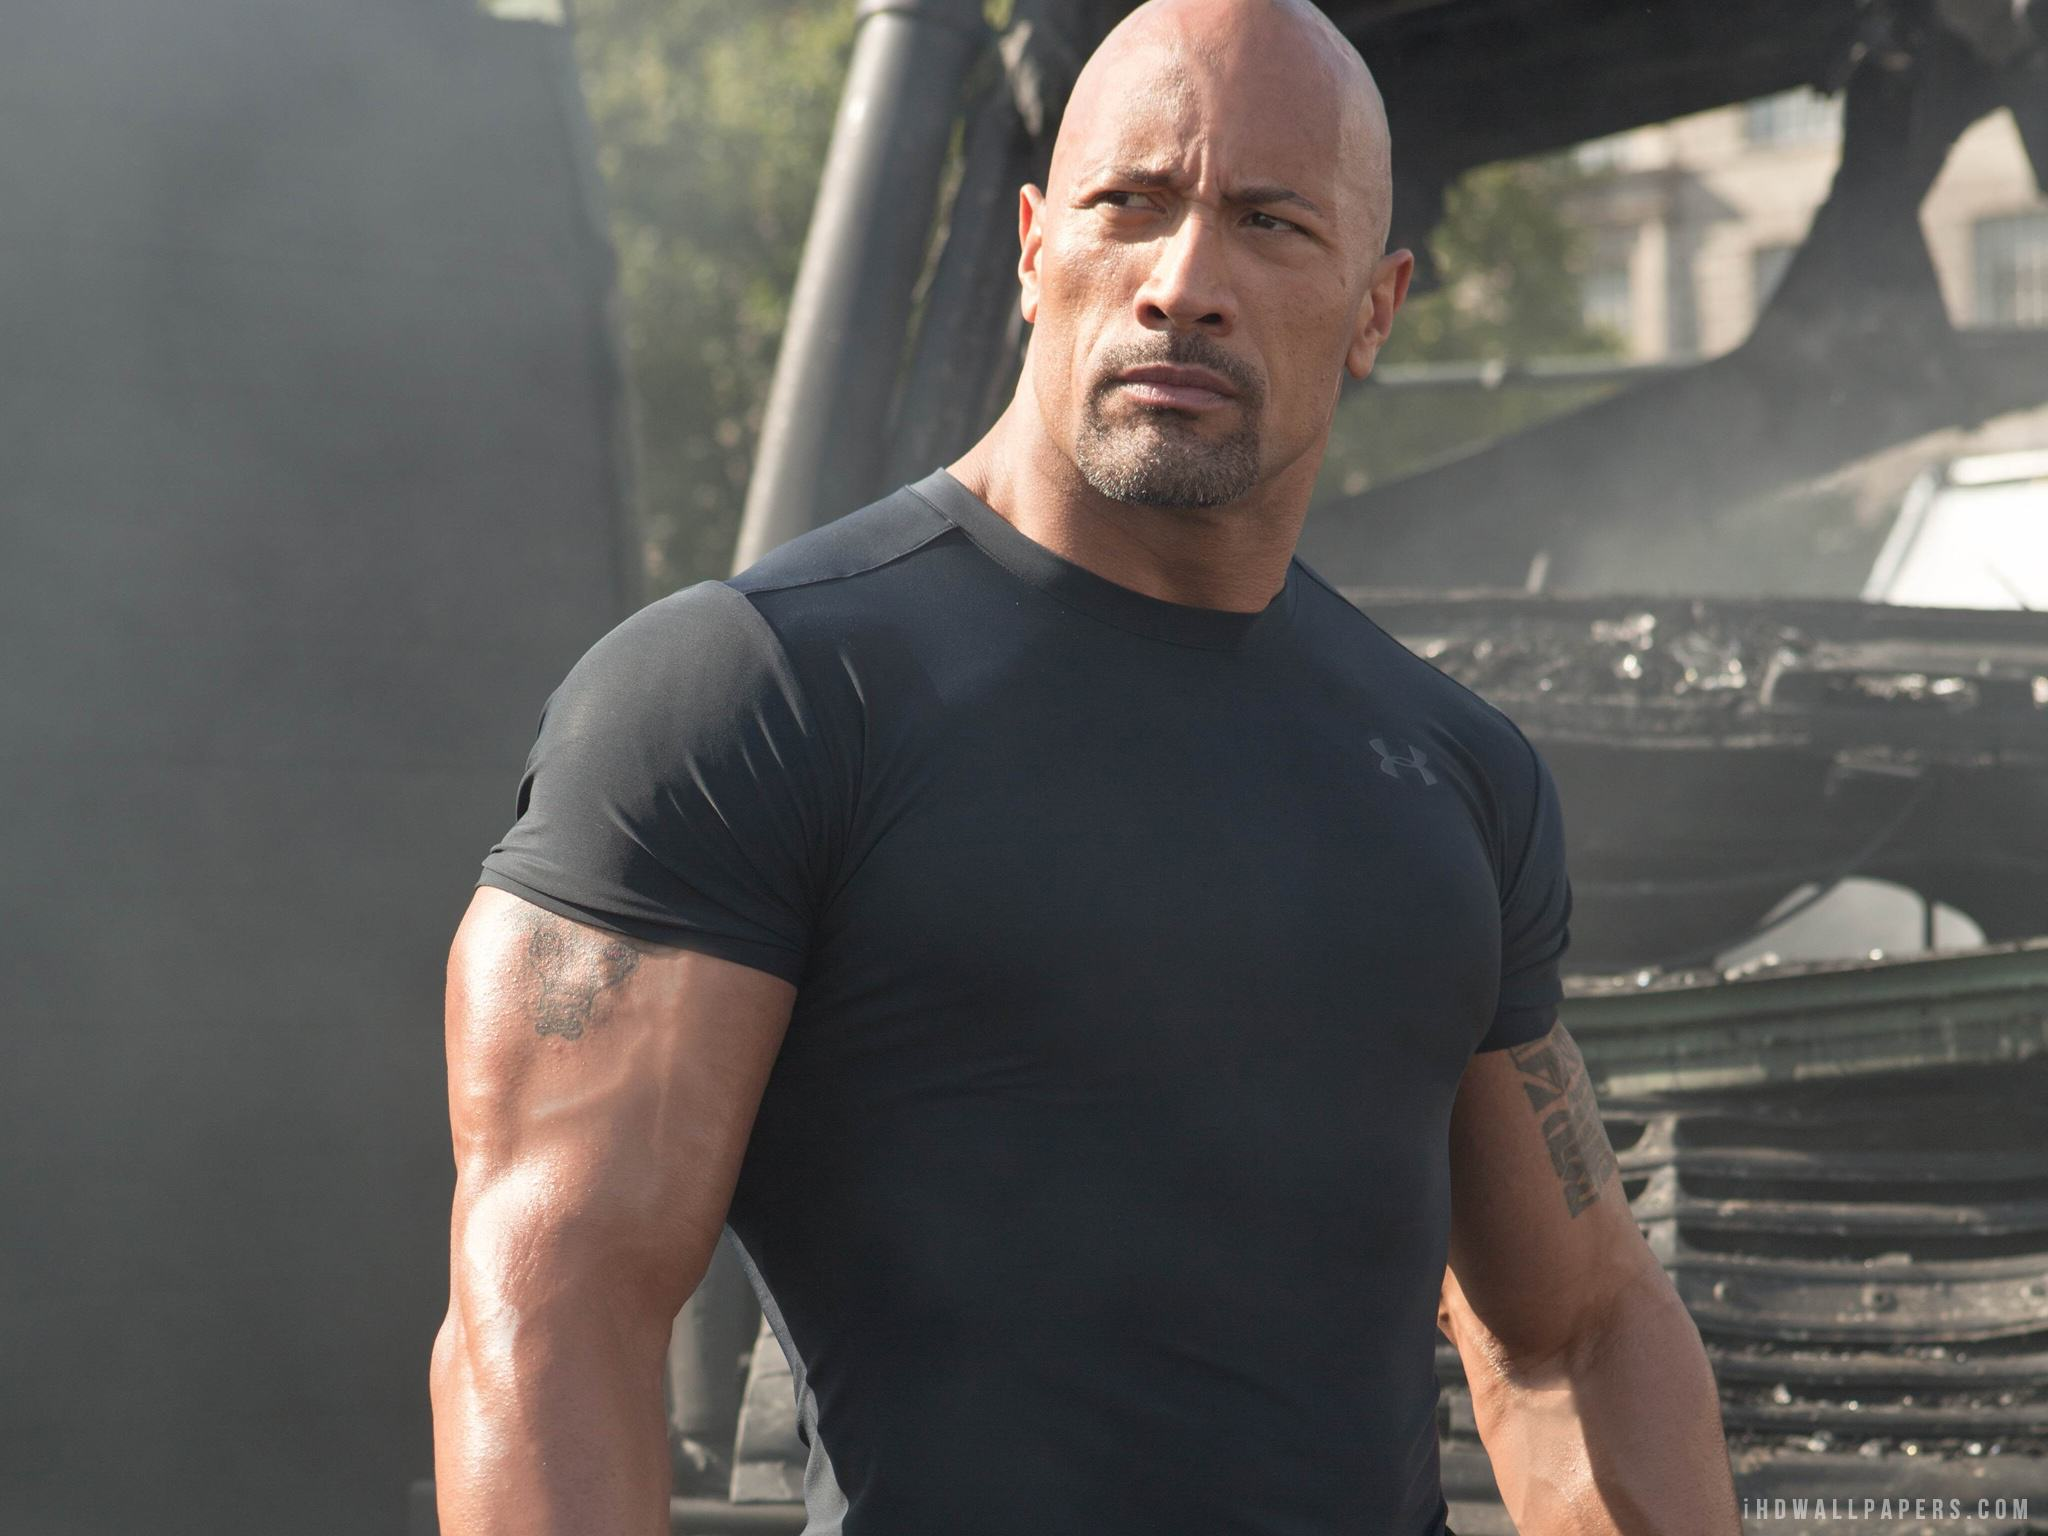 dwayne johnson in san andreas 2015 2048x1536 Seven Celebrities You Probably Didnt Know Struggled With Mental Illness